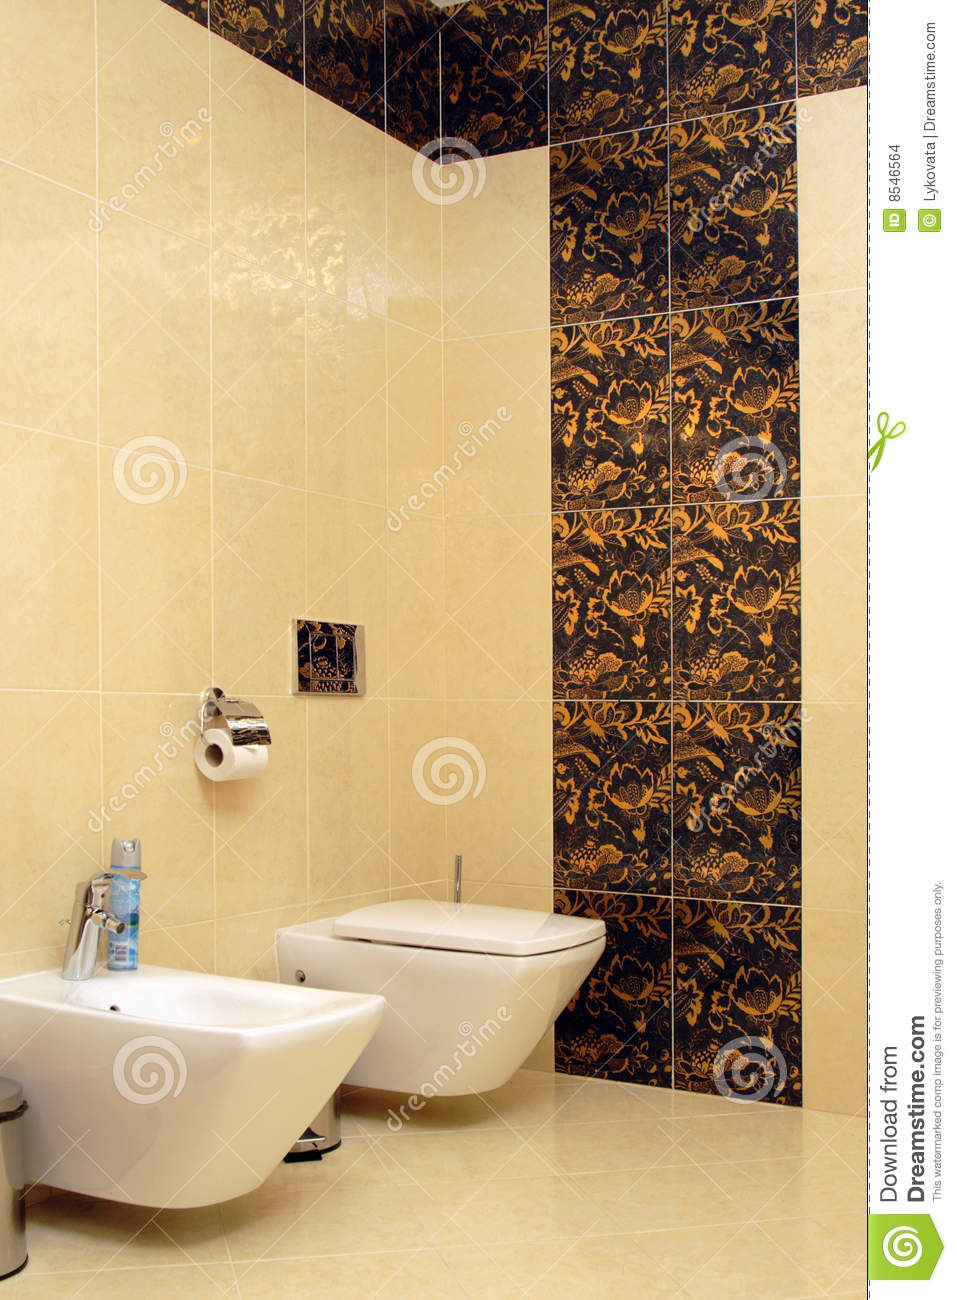 Luxury Bathroom With Toilet Sink And Bidet Stock Images